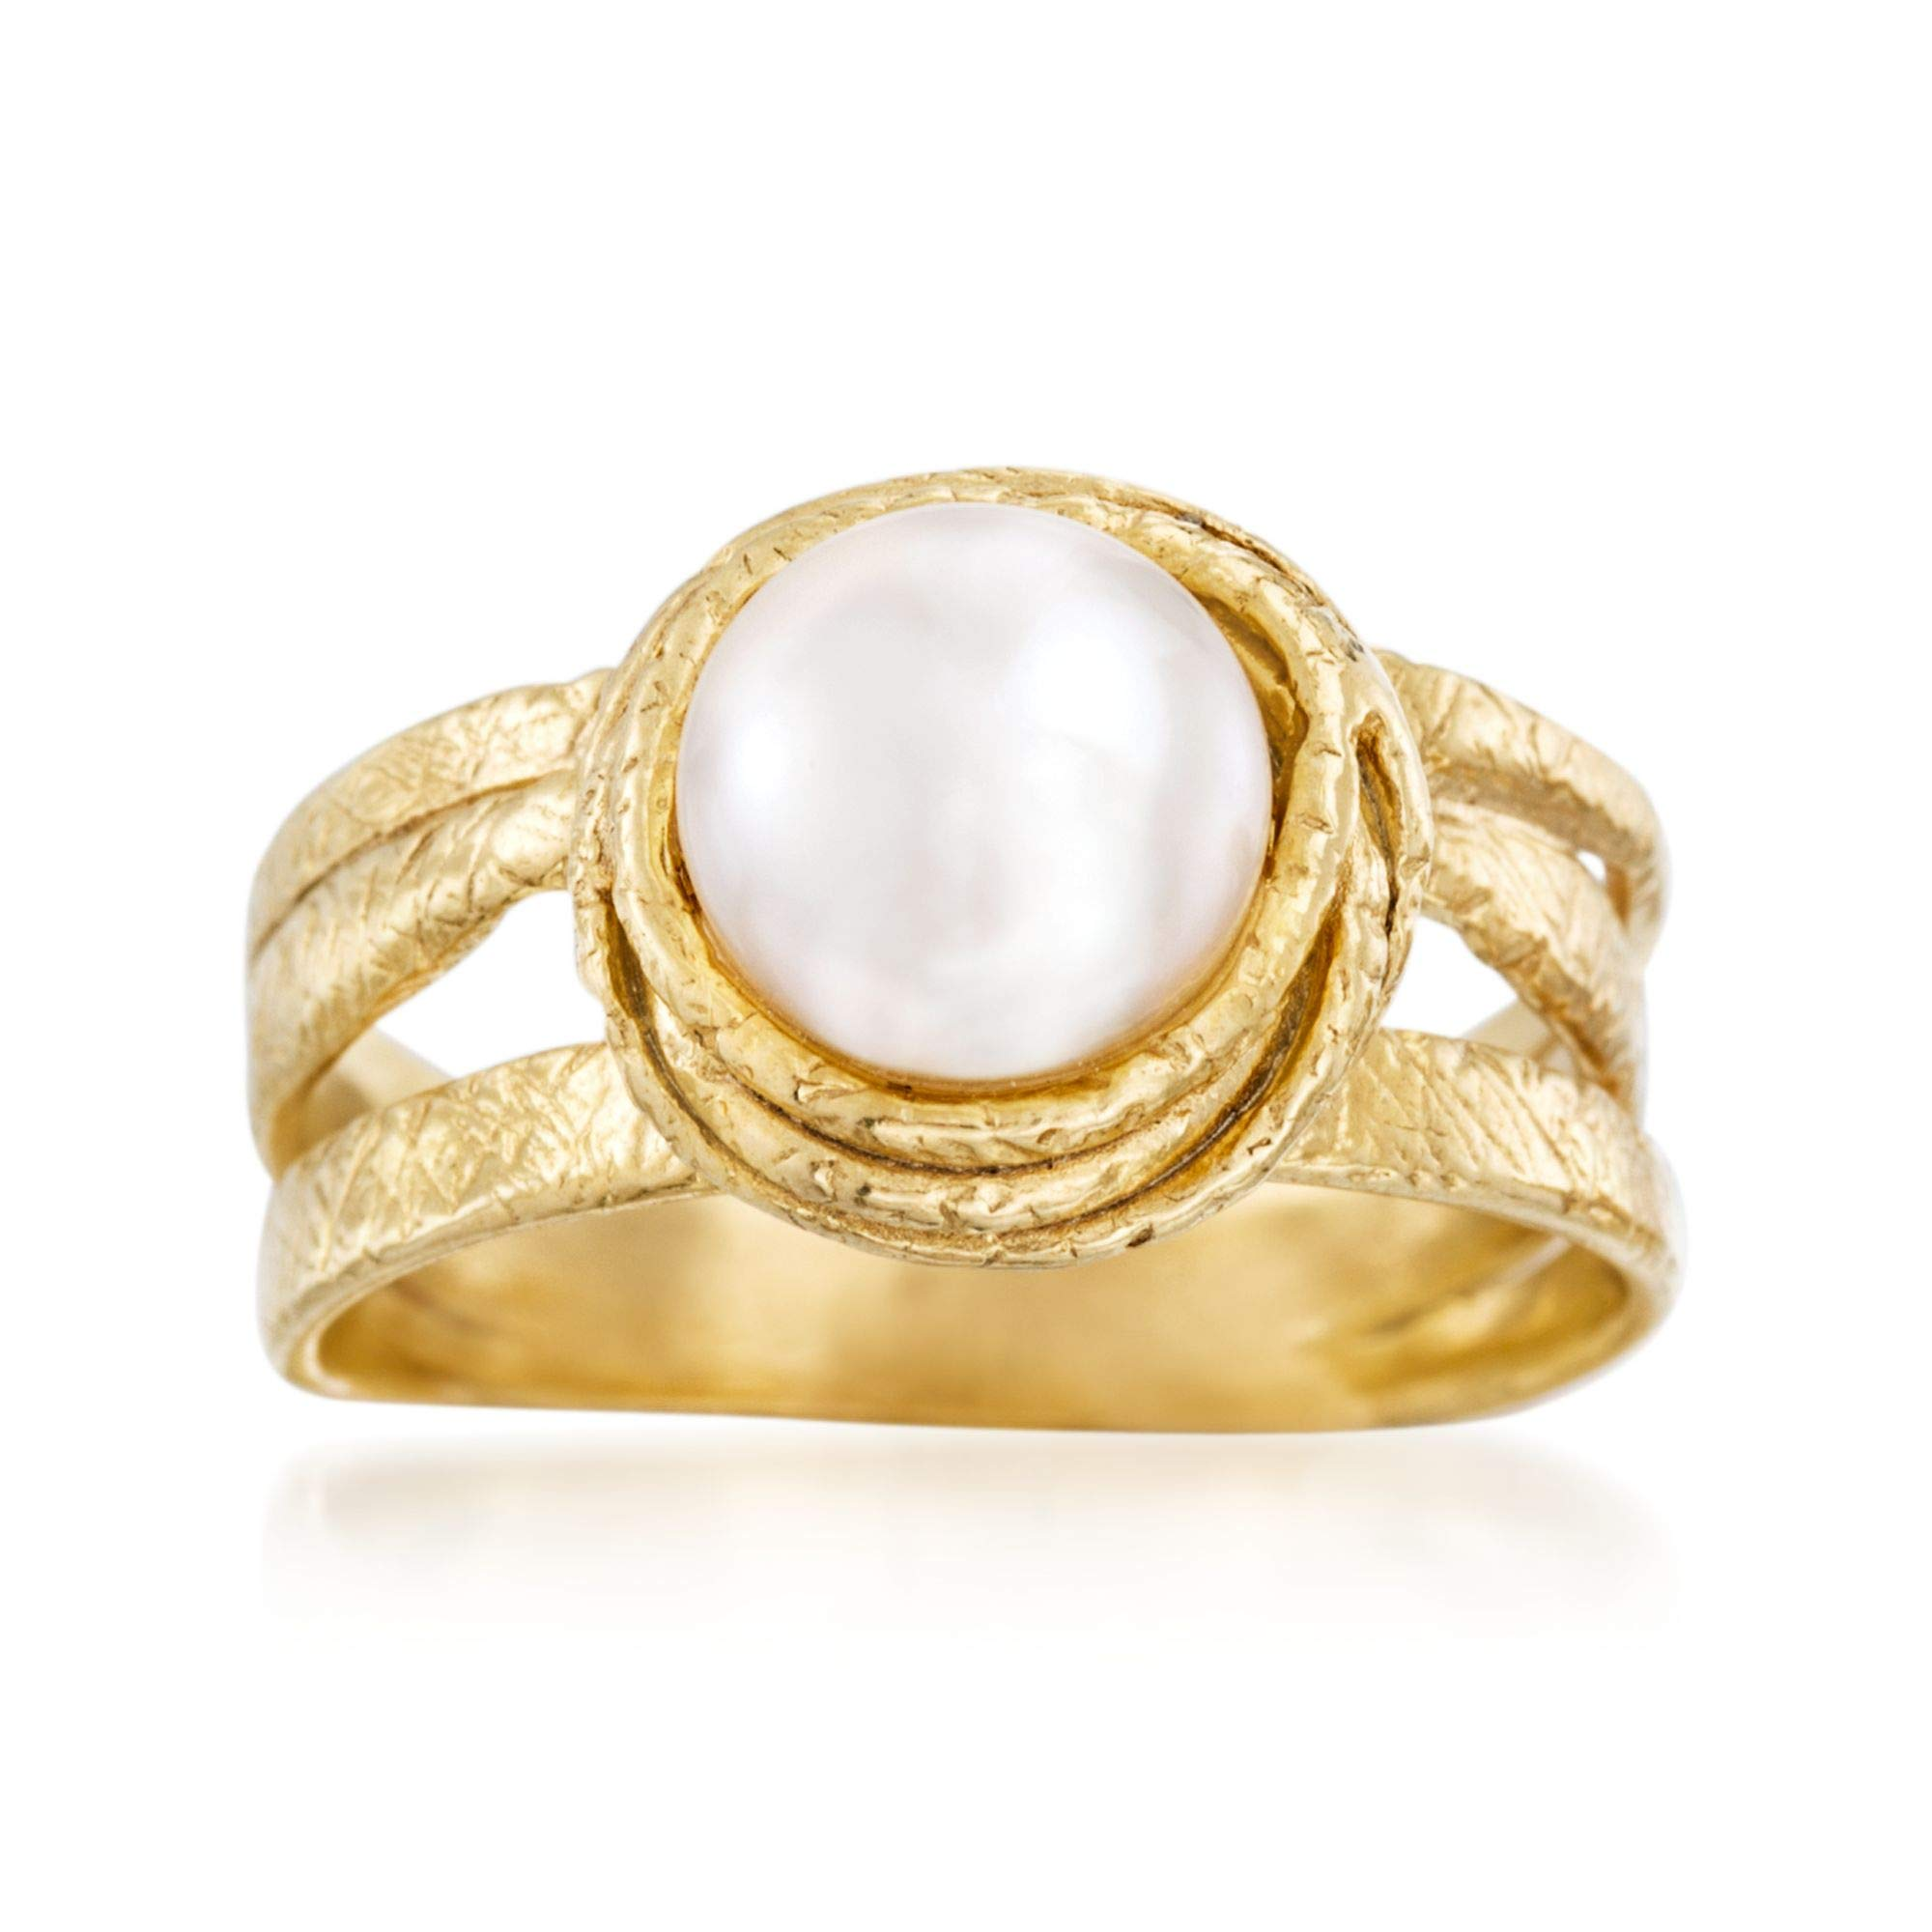 Ross-Simons 7-8mm Cultured Pearl Ring in 18kt Gold Over Sterling